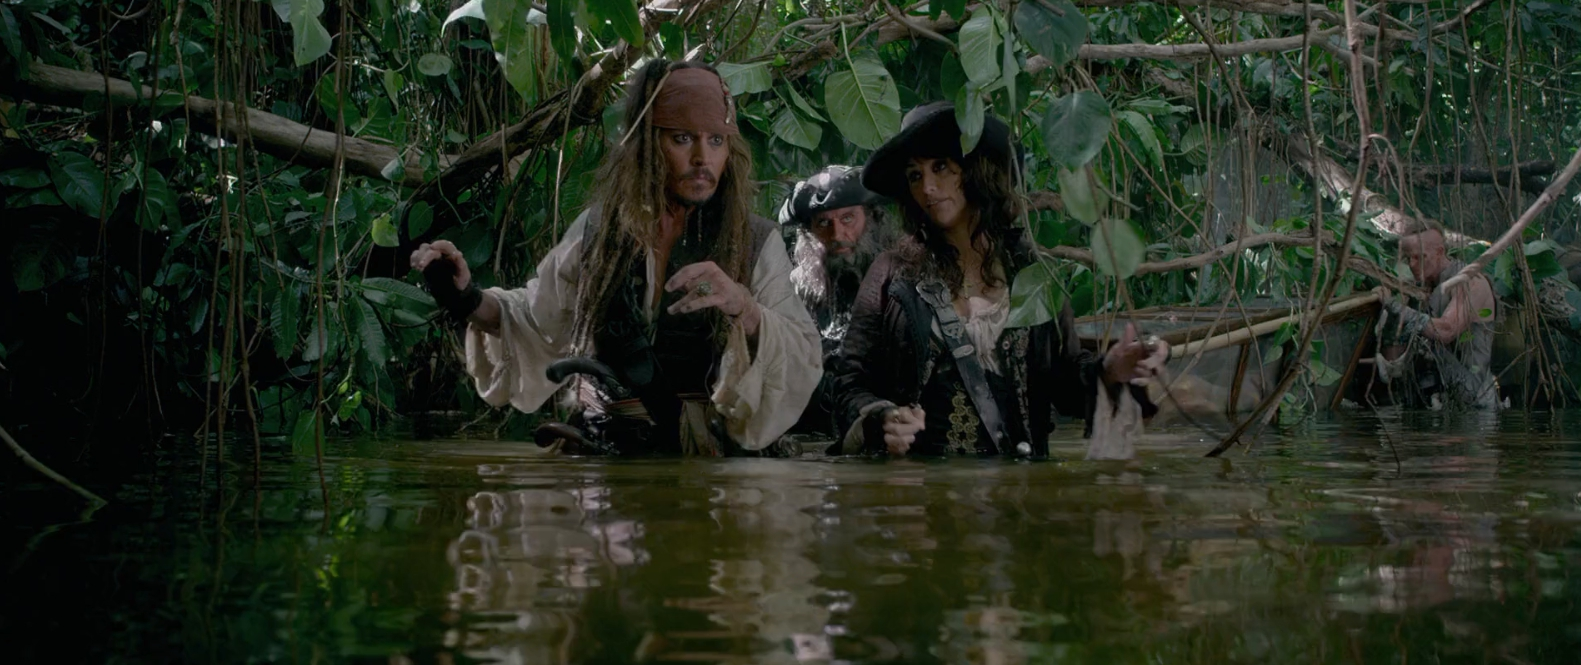 Pirates of the Caribbean: On Stranger Tides Movie Review